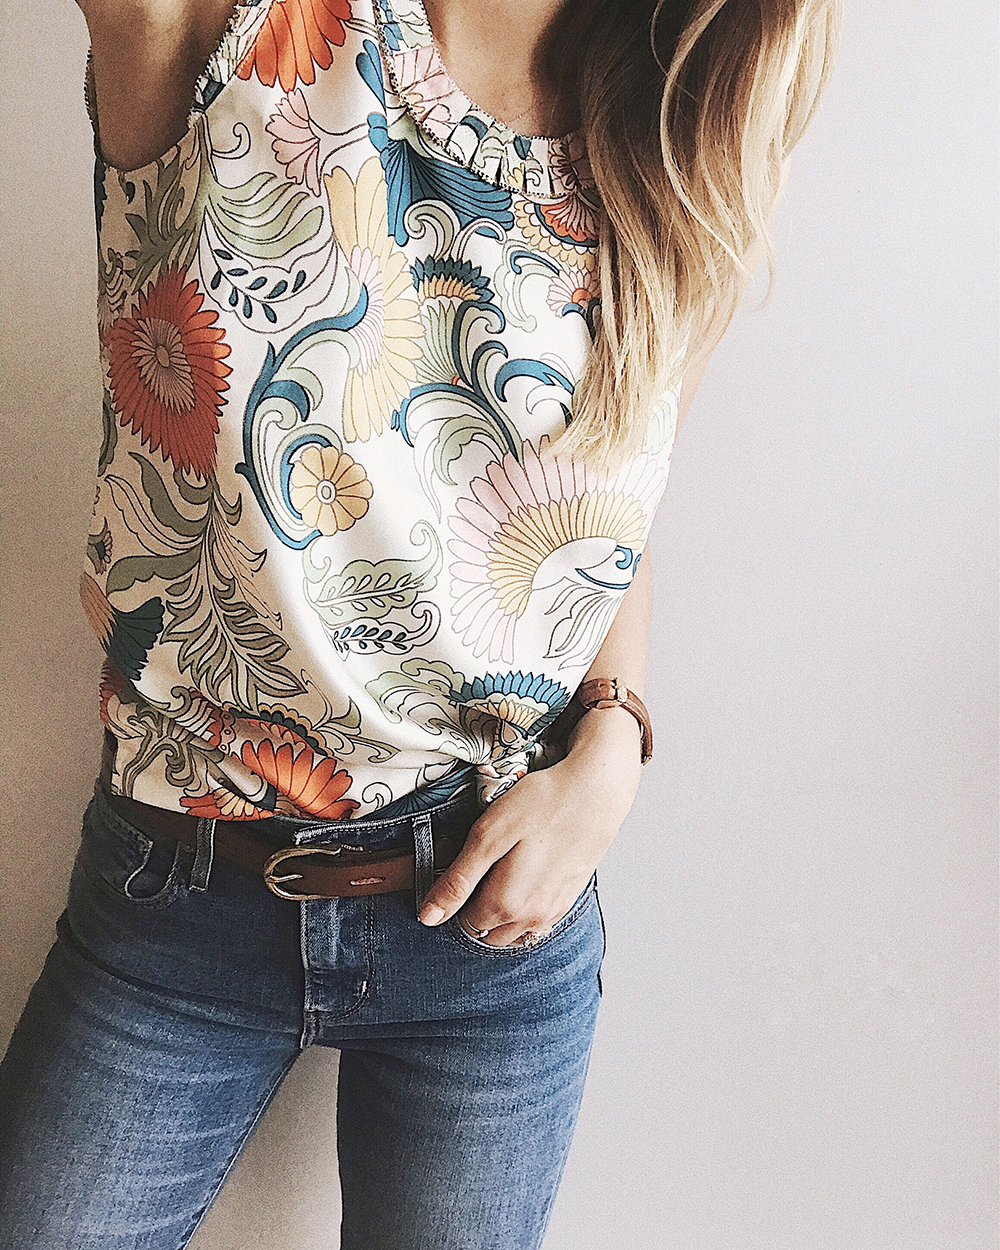 livvyland-blog-olivia-watson-instagram-roundup-livvylandblog-cozy-chic-boho-outfit-idea-1-j-crew-floral-silk-tank-top-blouse